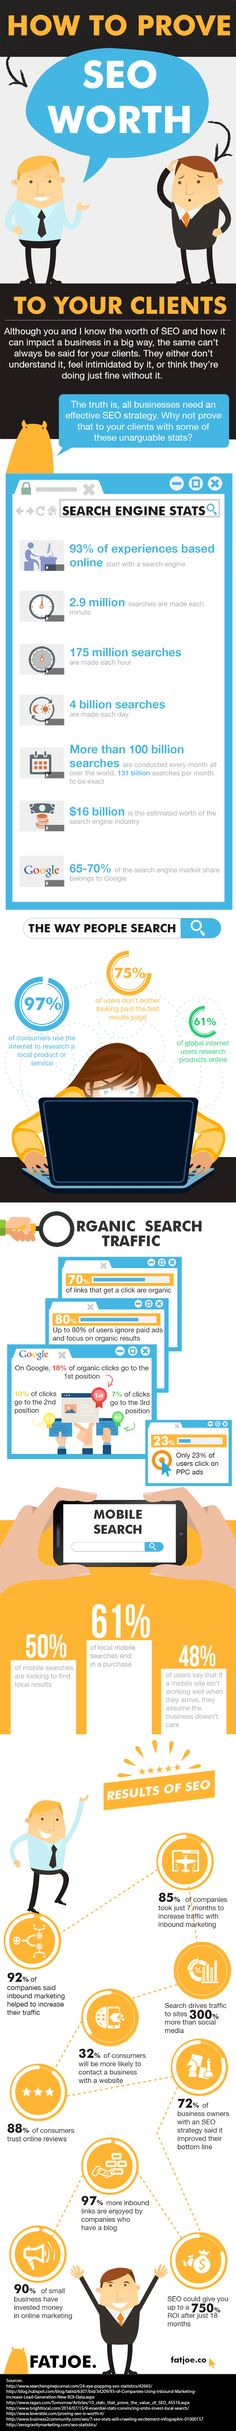 [Infographic] How To Prove SEO Worth